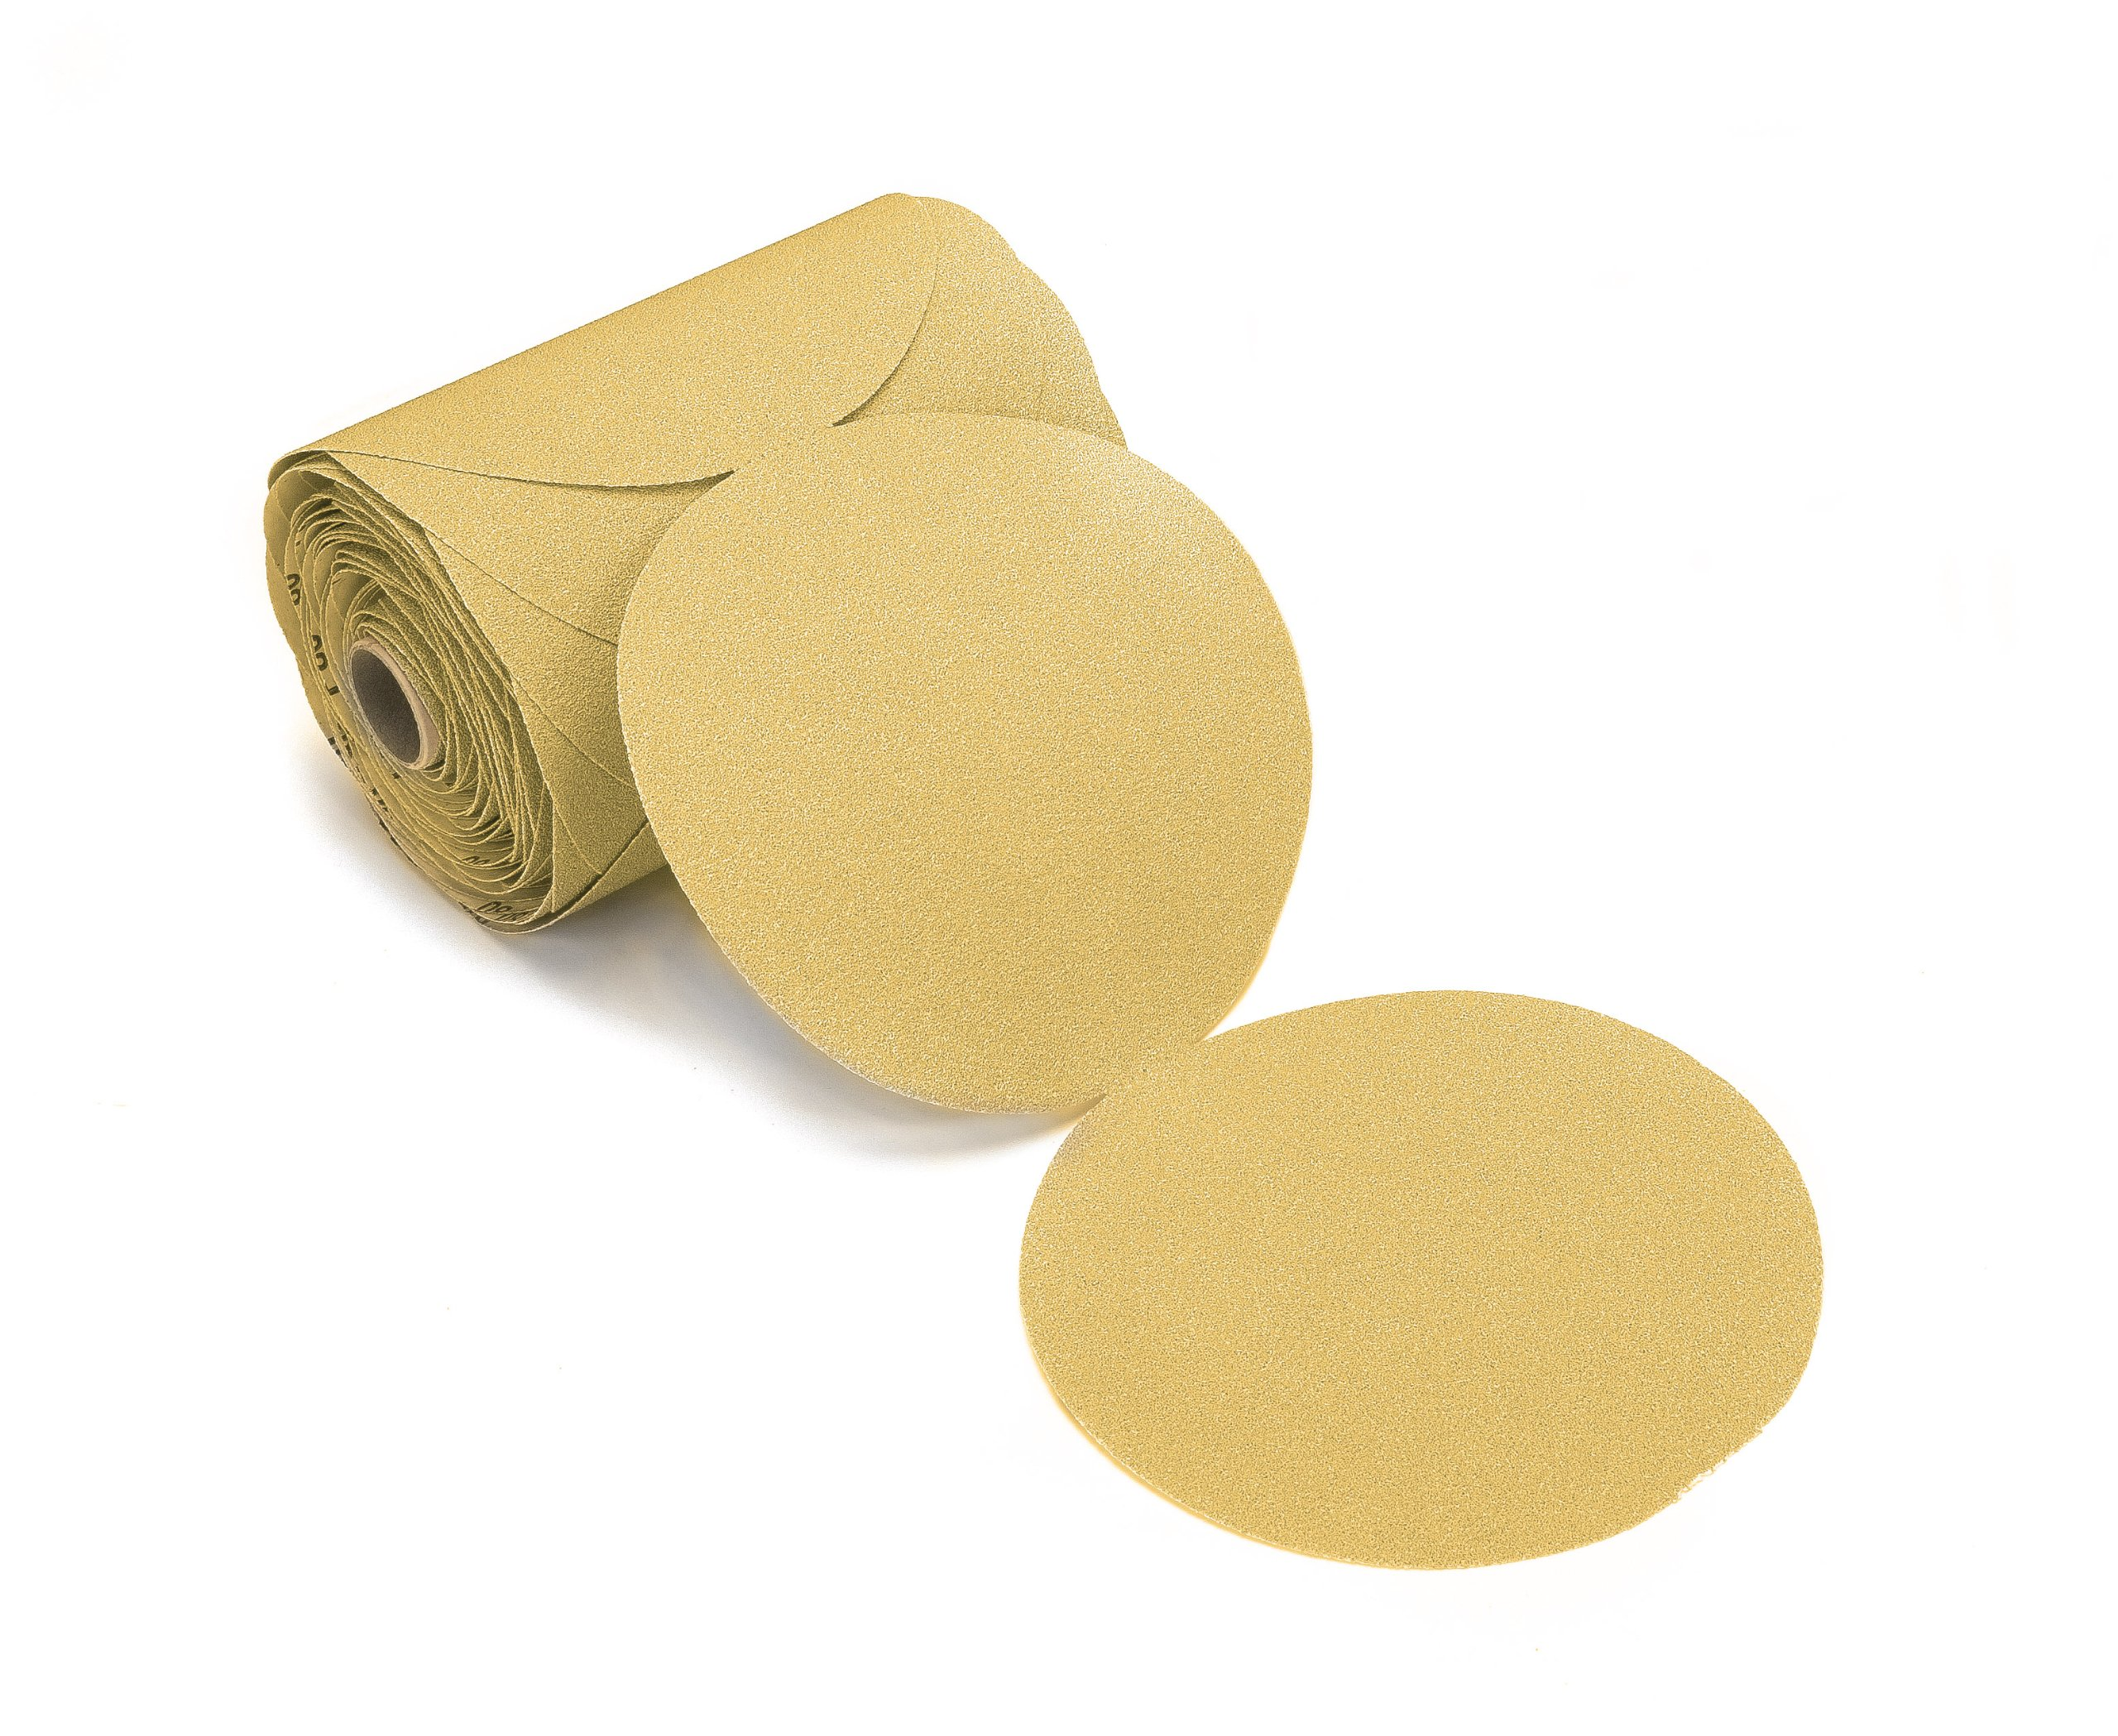 Mirka 23-342-080 Bulldog Gold 6-Inch PSA Linkrol Disc with 80 Grit by Mirka